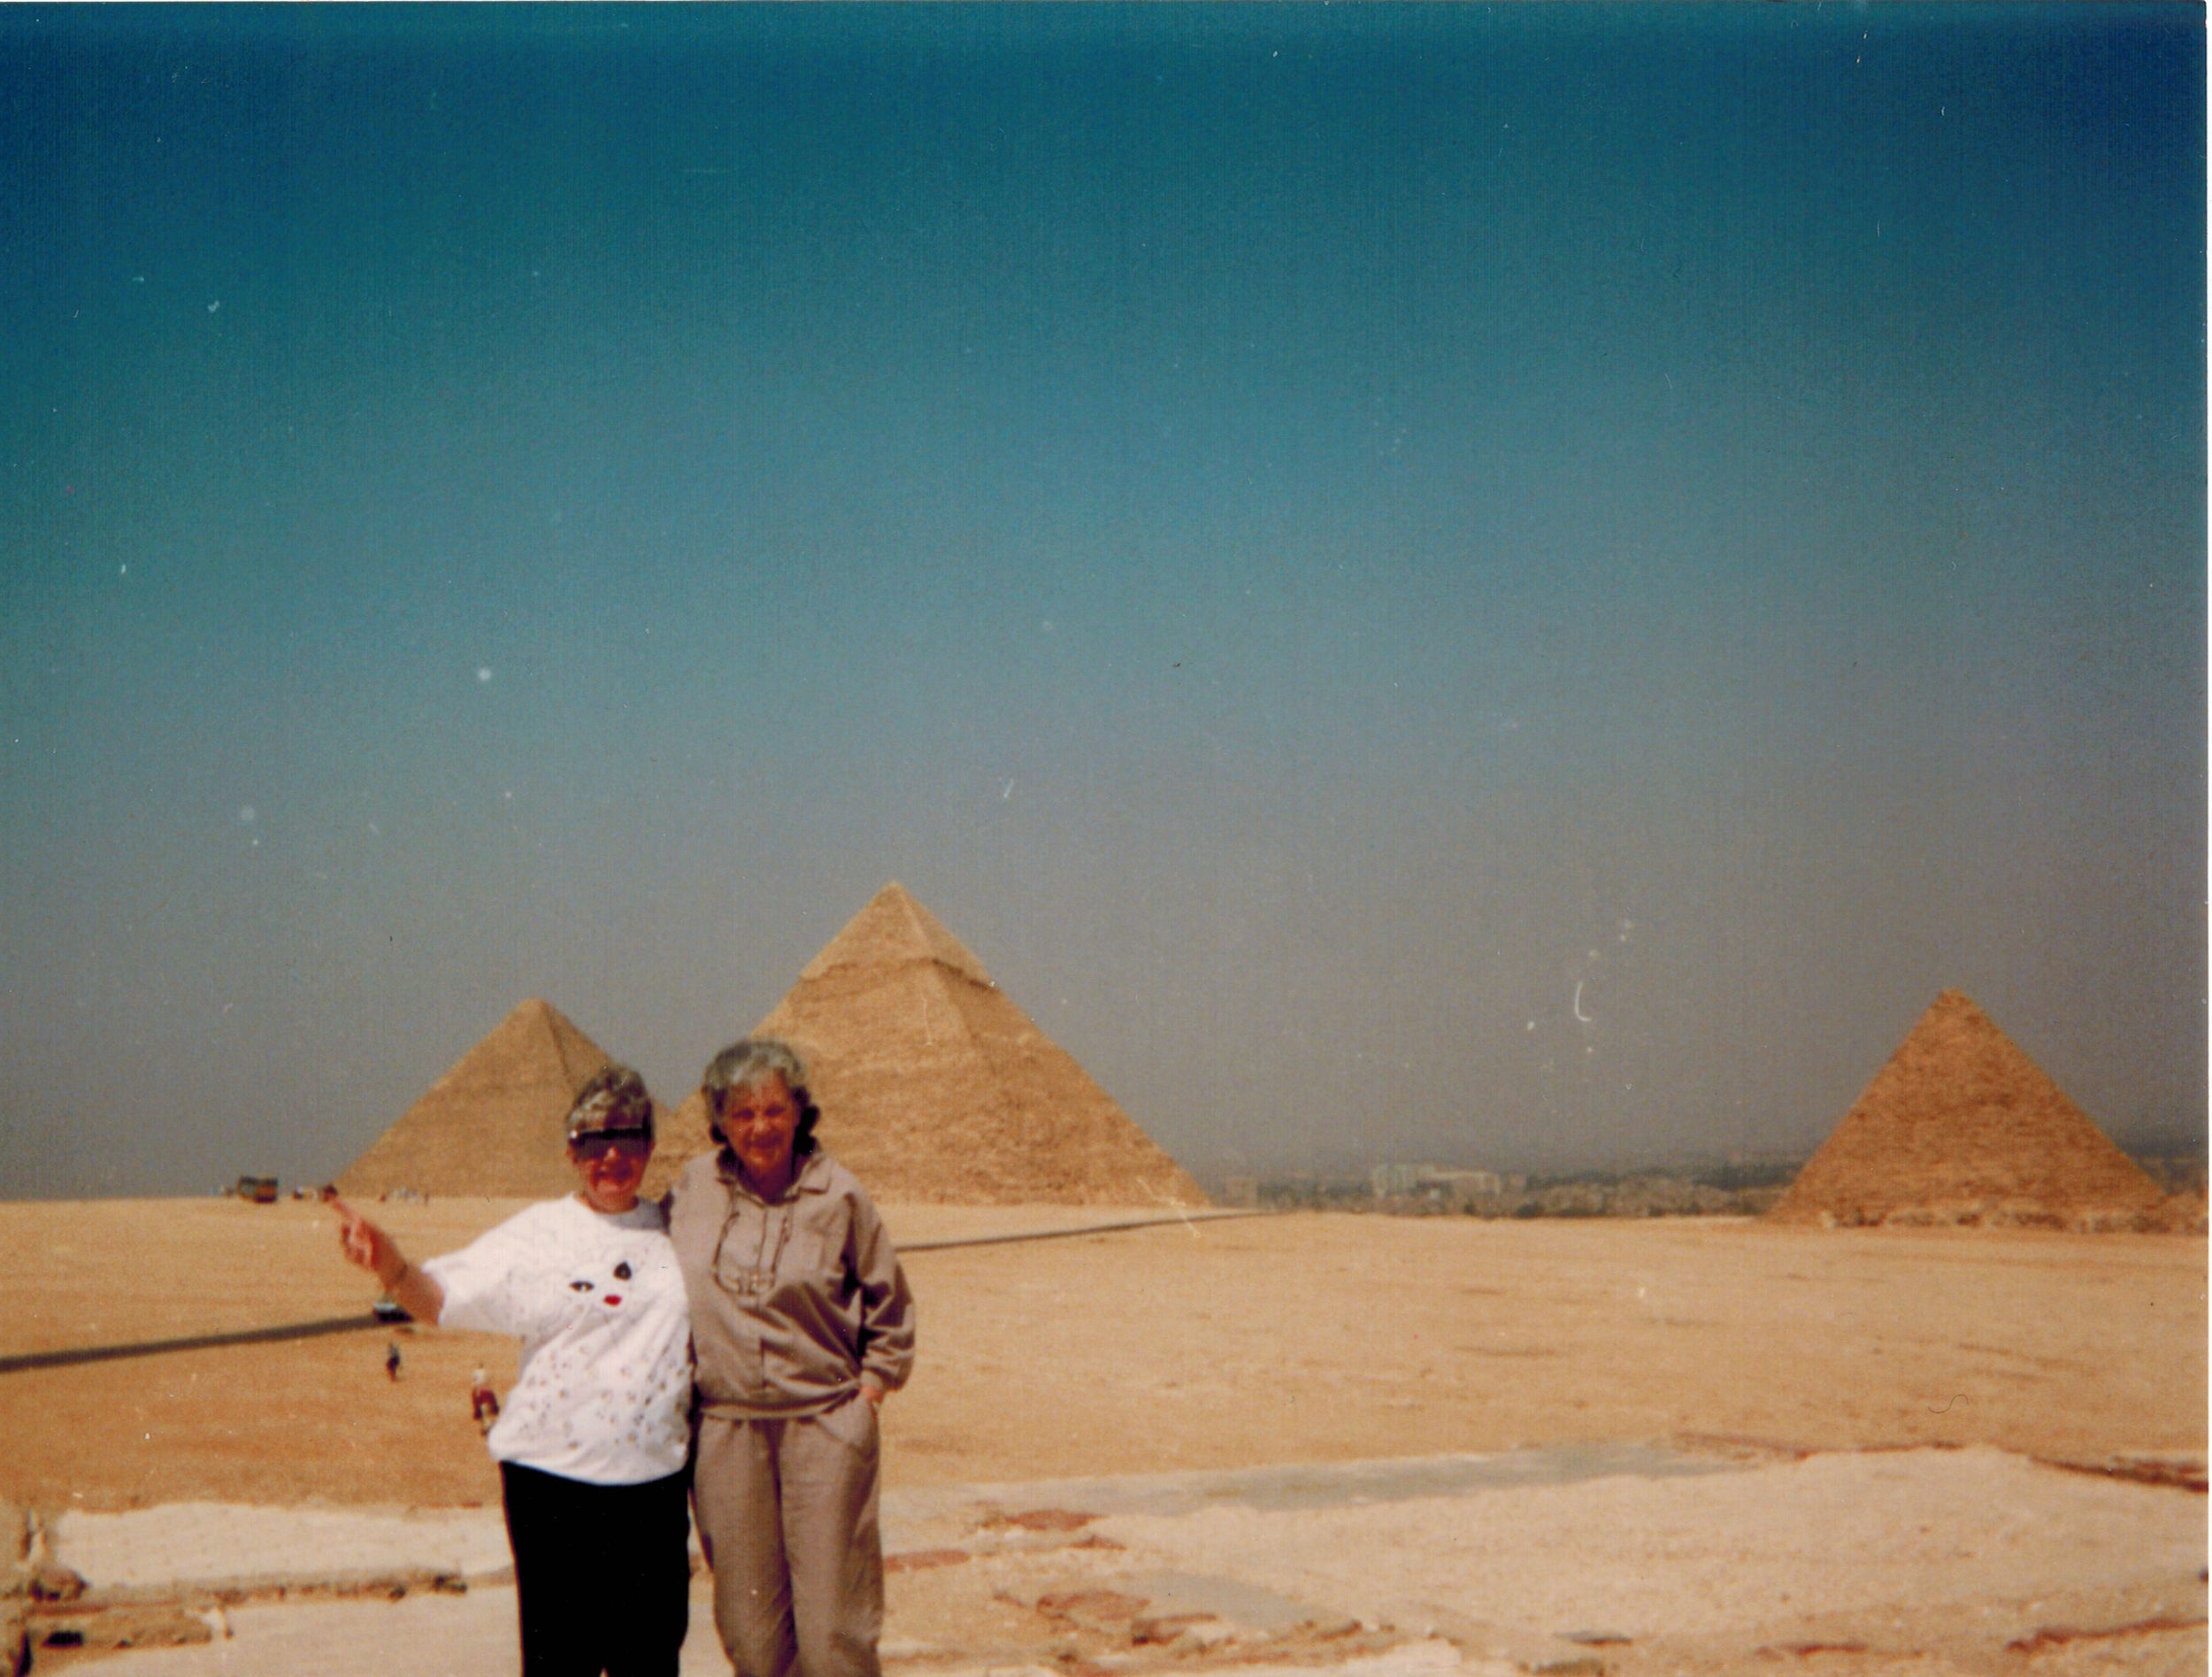 Wanda, Meg's Grandma, and Elaine, Julia's Nana, at the pyramids in Egypt in the late 1980s